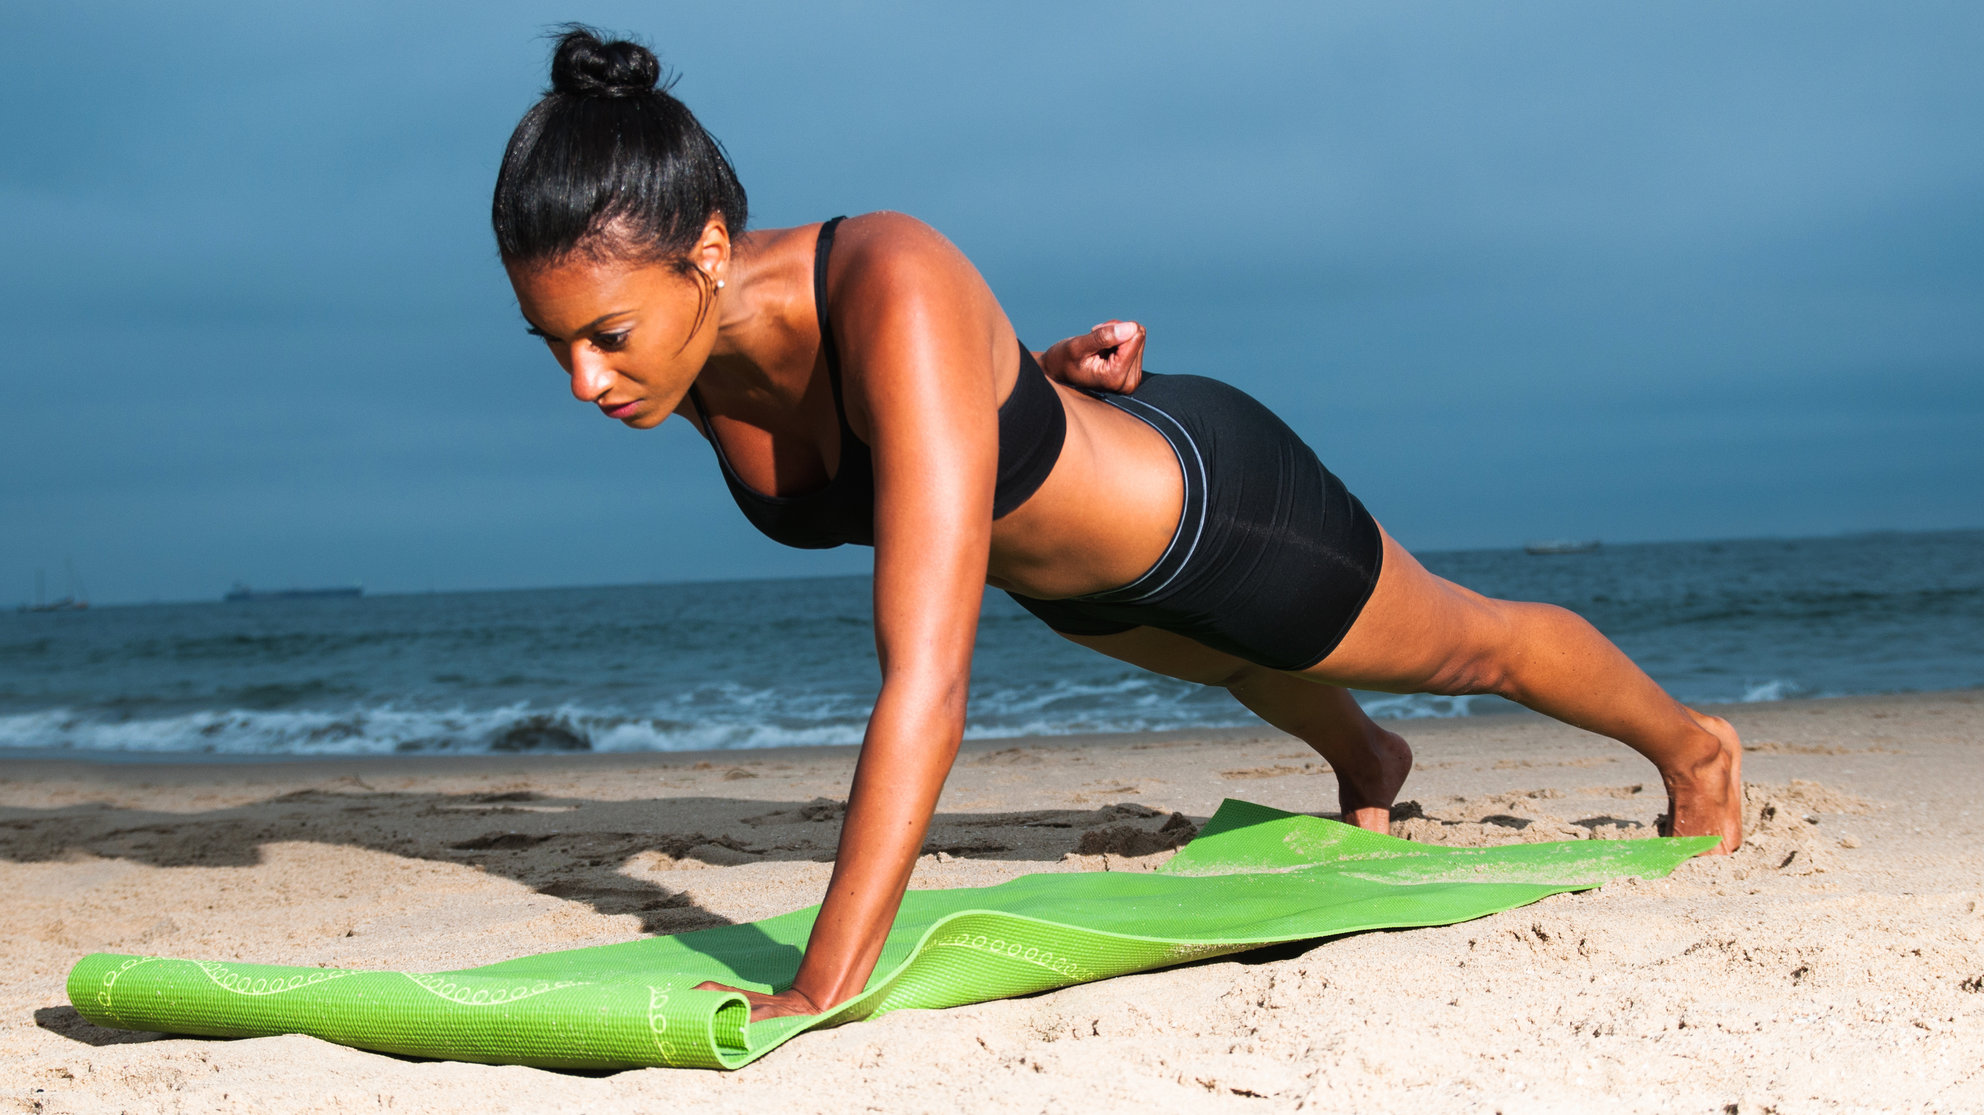 hiit-beach-workout-plank-pushup-one-arm